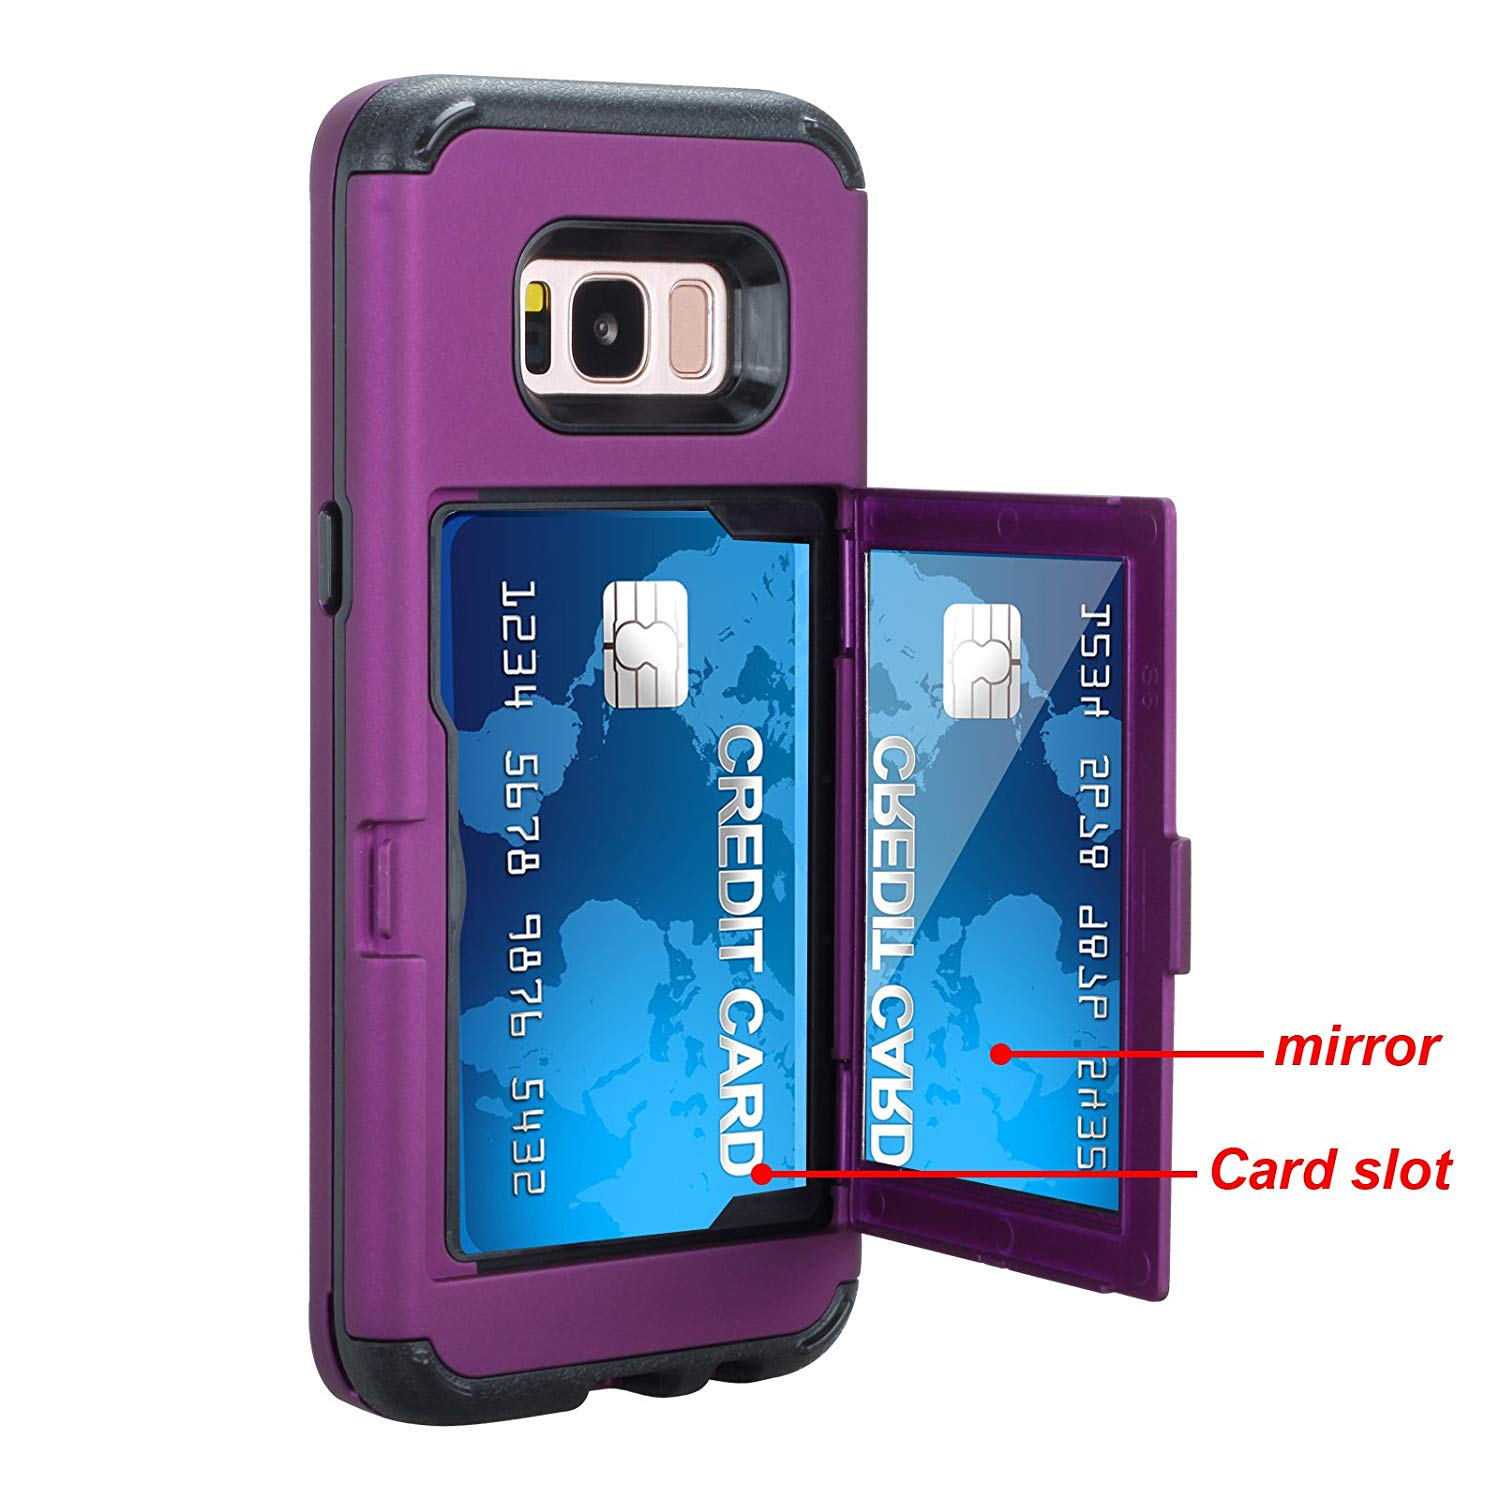 Galaxy S8 Plus Shockproof Case,Samsung Galaxy S8 Plus Case Hybrid Purple,Gostyle 3 in 1 Hard PC + Soft Rubber Heavy Duty Drop Protection Armor Protective Case with Wallet Card Holder and Makeup Mirror